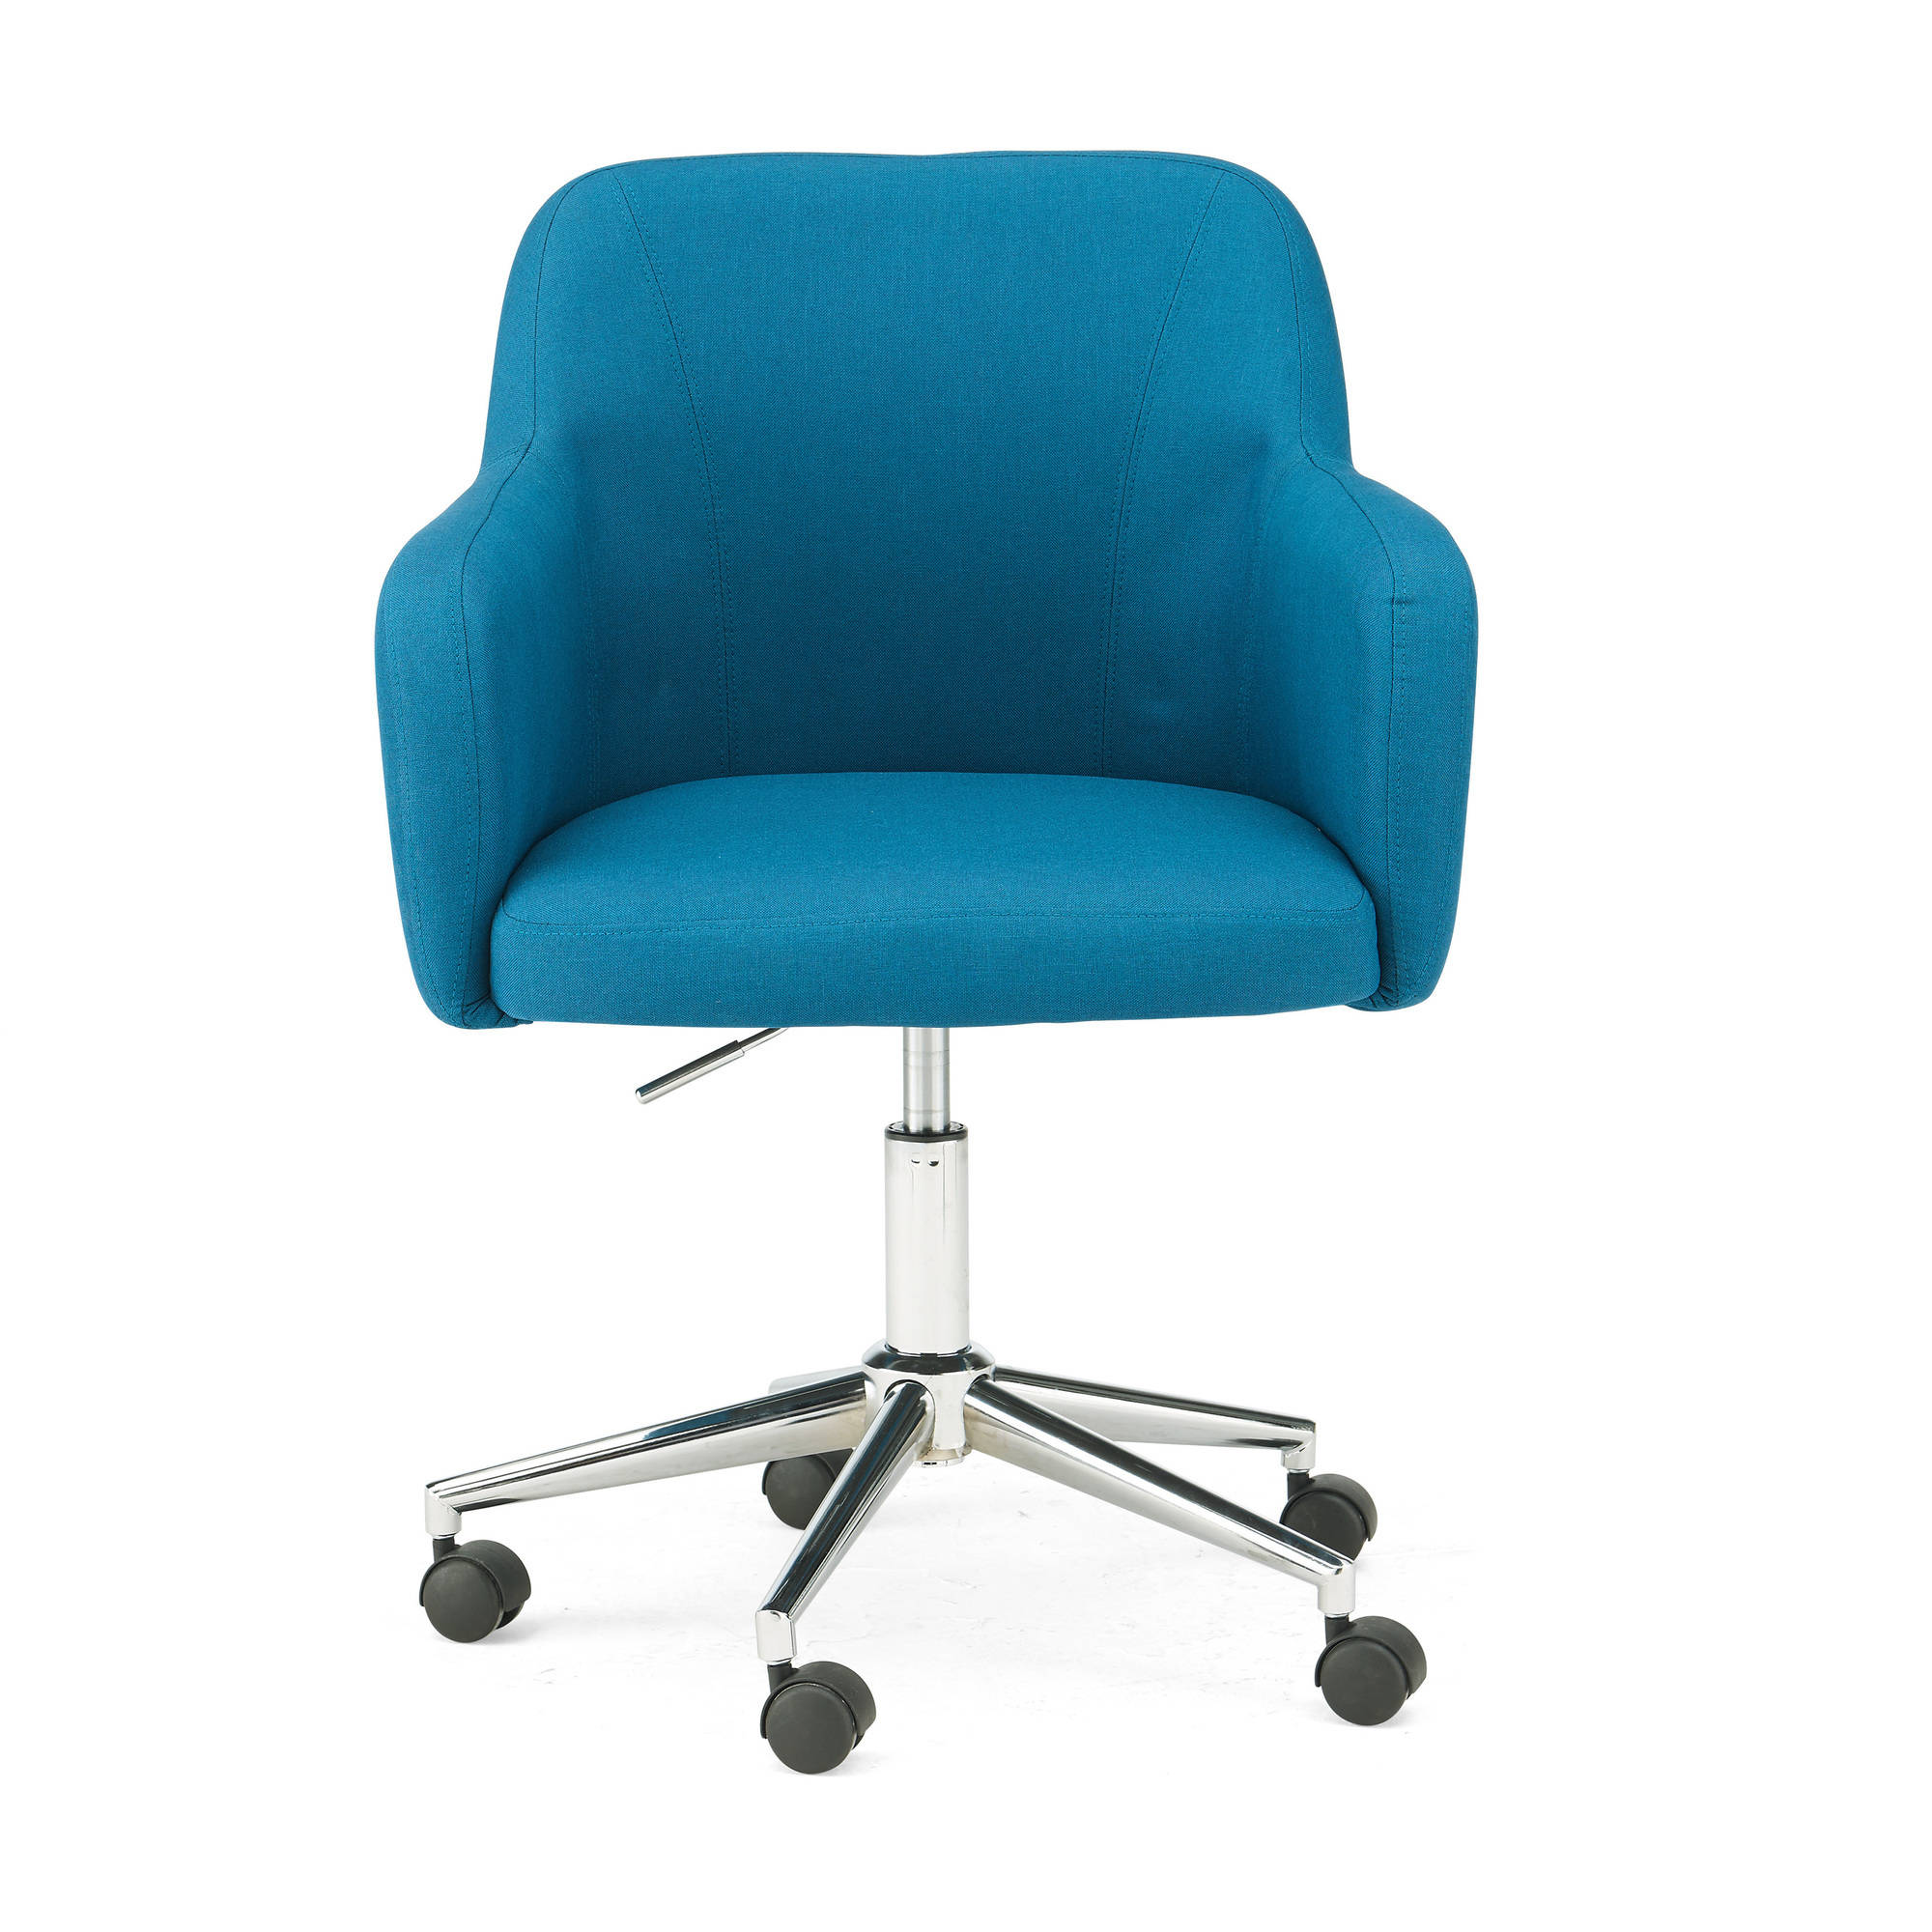 mainstays low back office chair, multiple colors - walmart